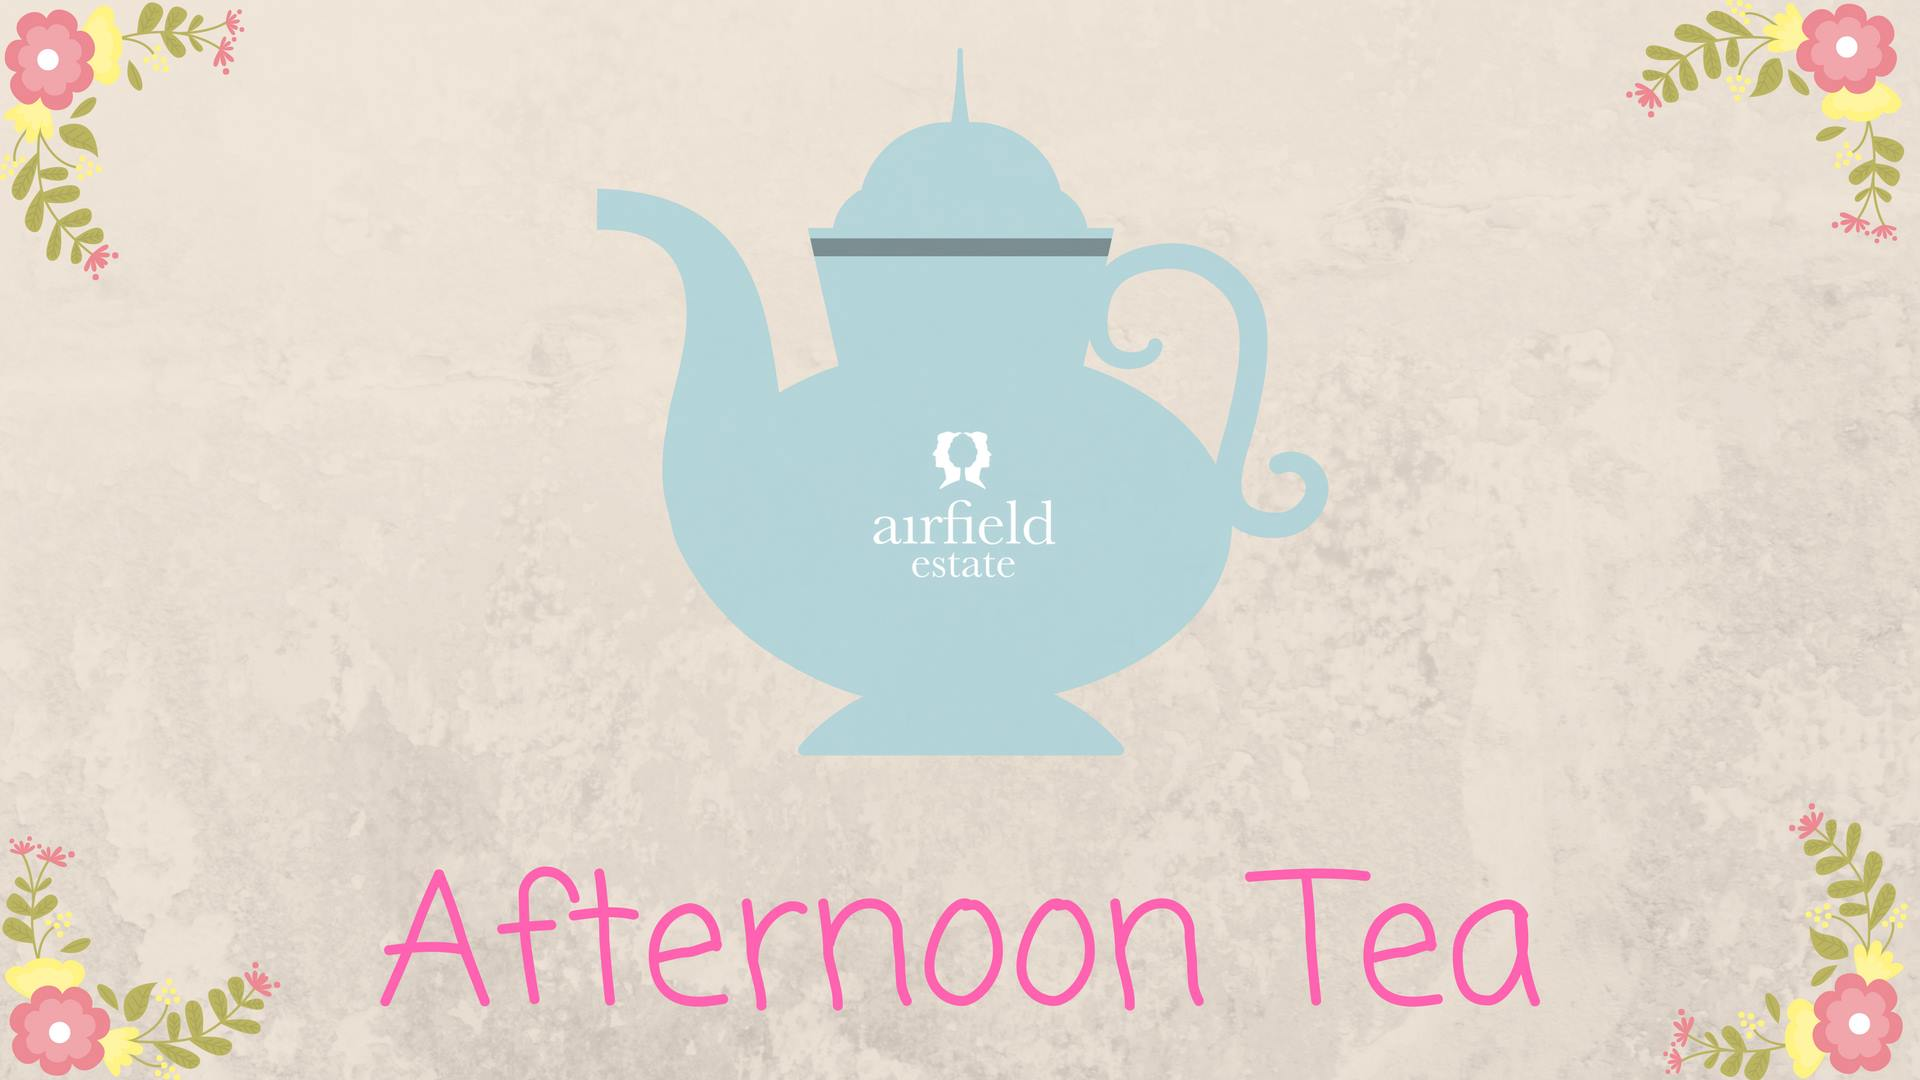 Afternoon tea with teapot